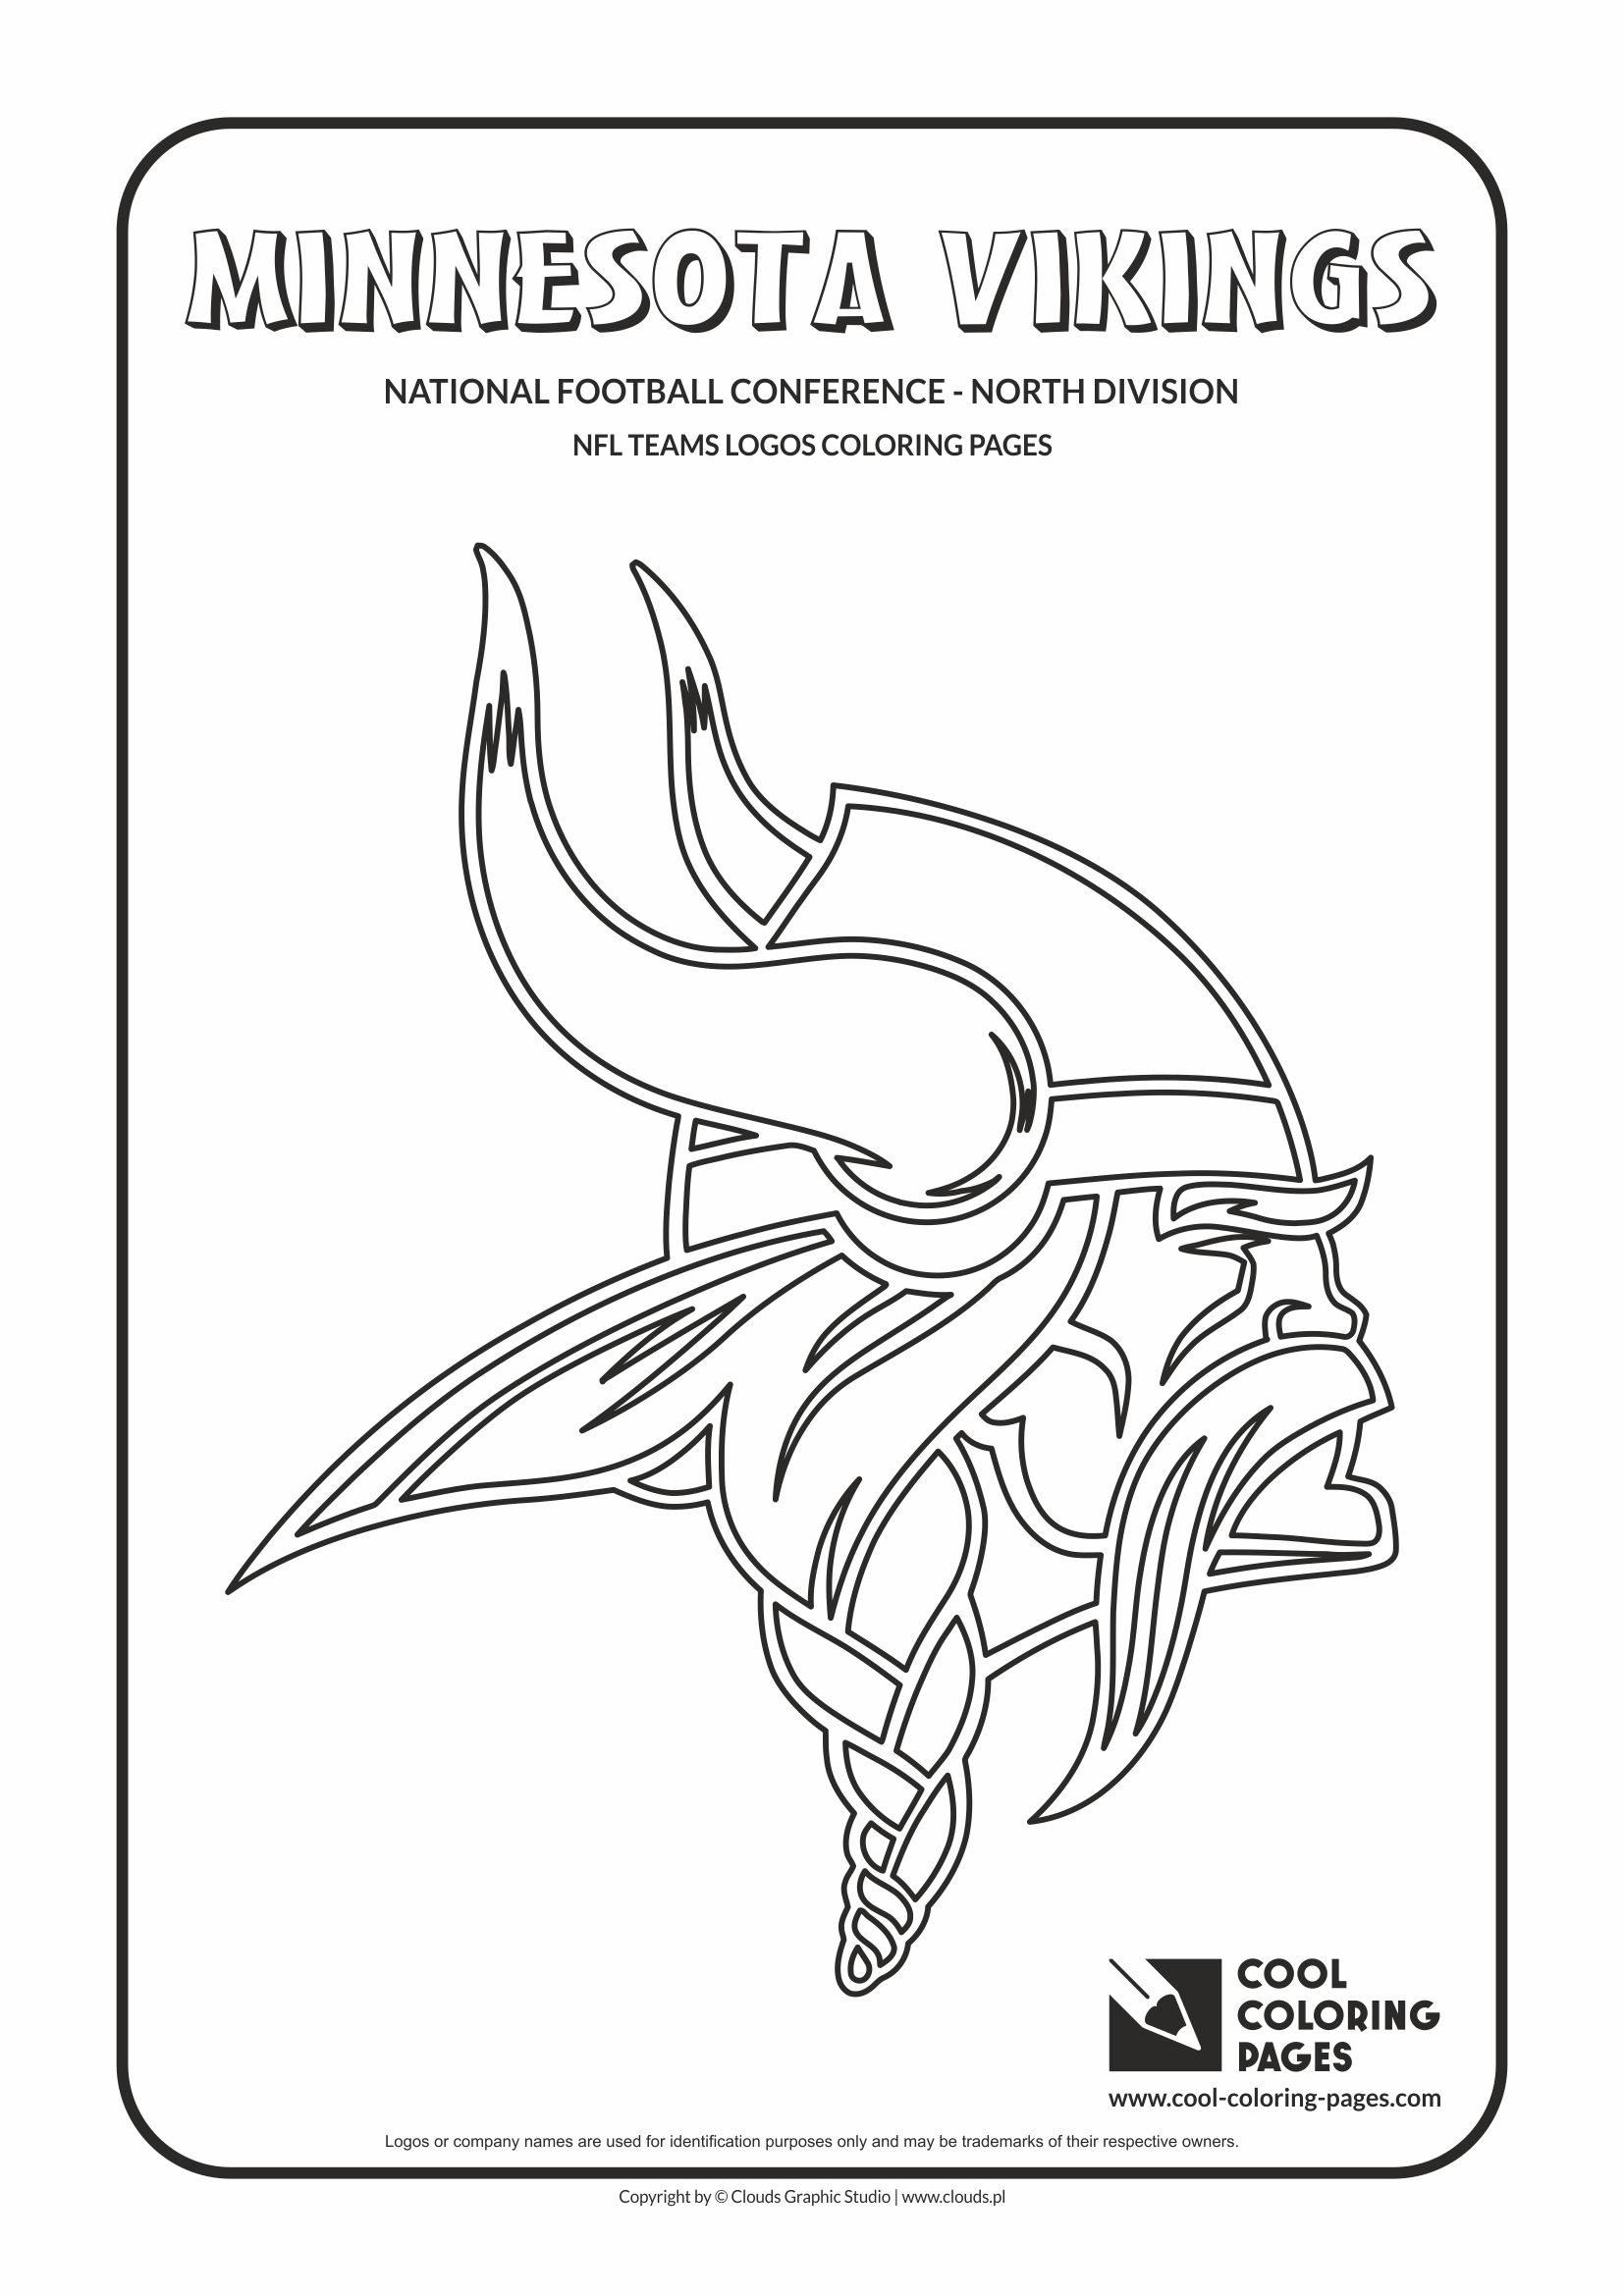 cool coloring pages nfl american football clubs logos national football conference north division - Nfl Logo Coloring Pages Printable